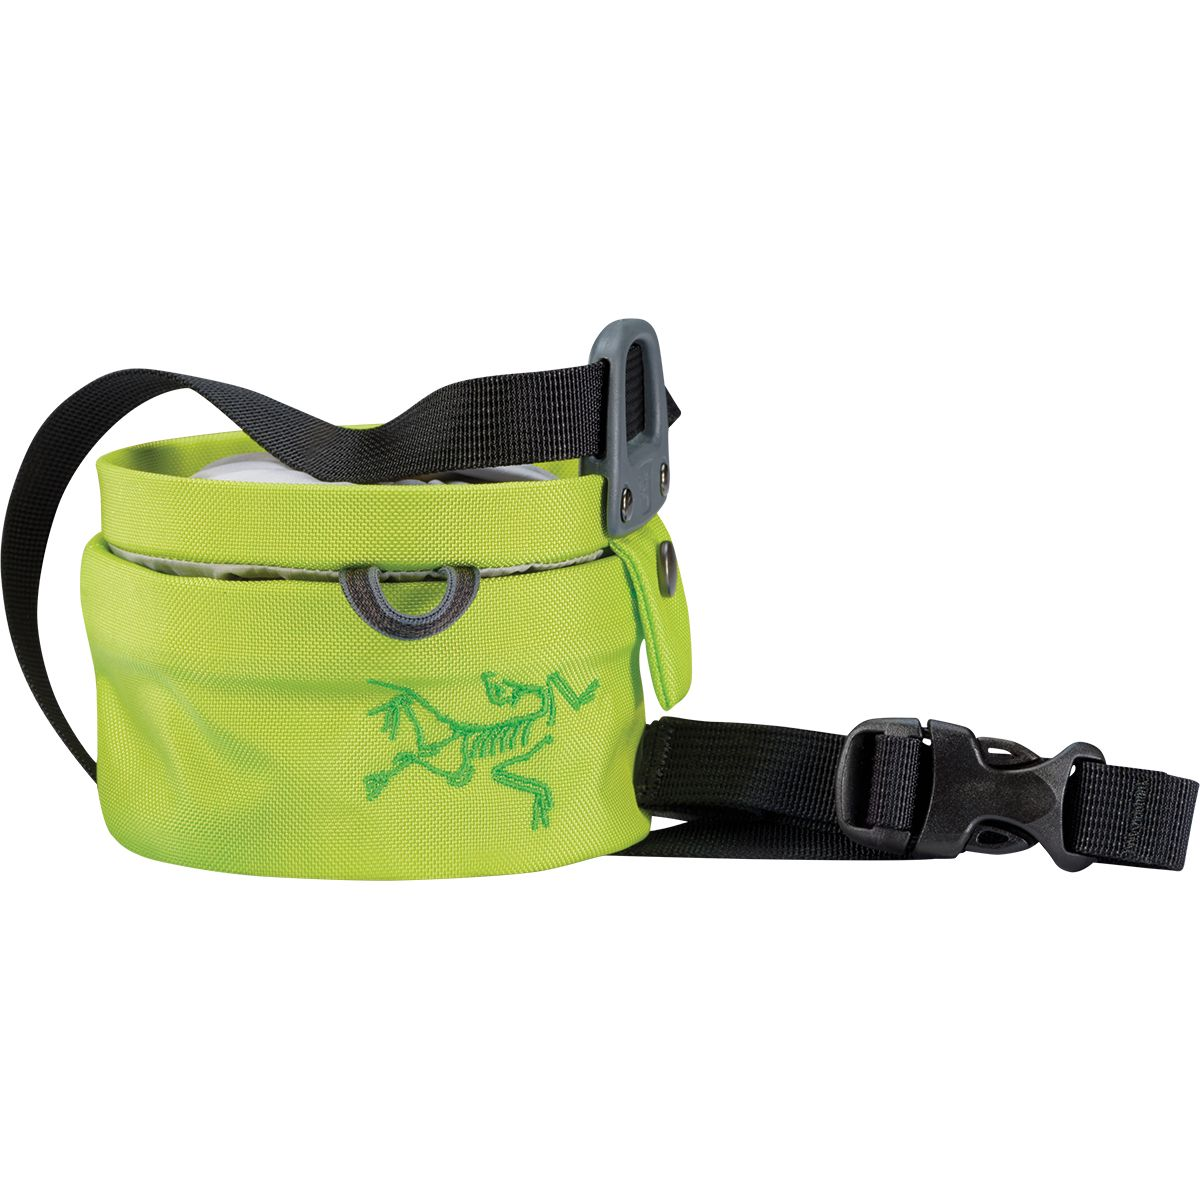 Image of Arcteryx Aperture Chalk Bag S (Grau)